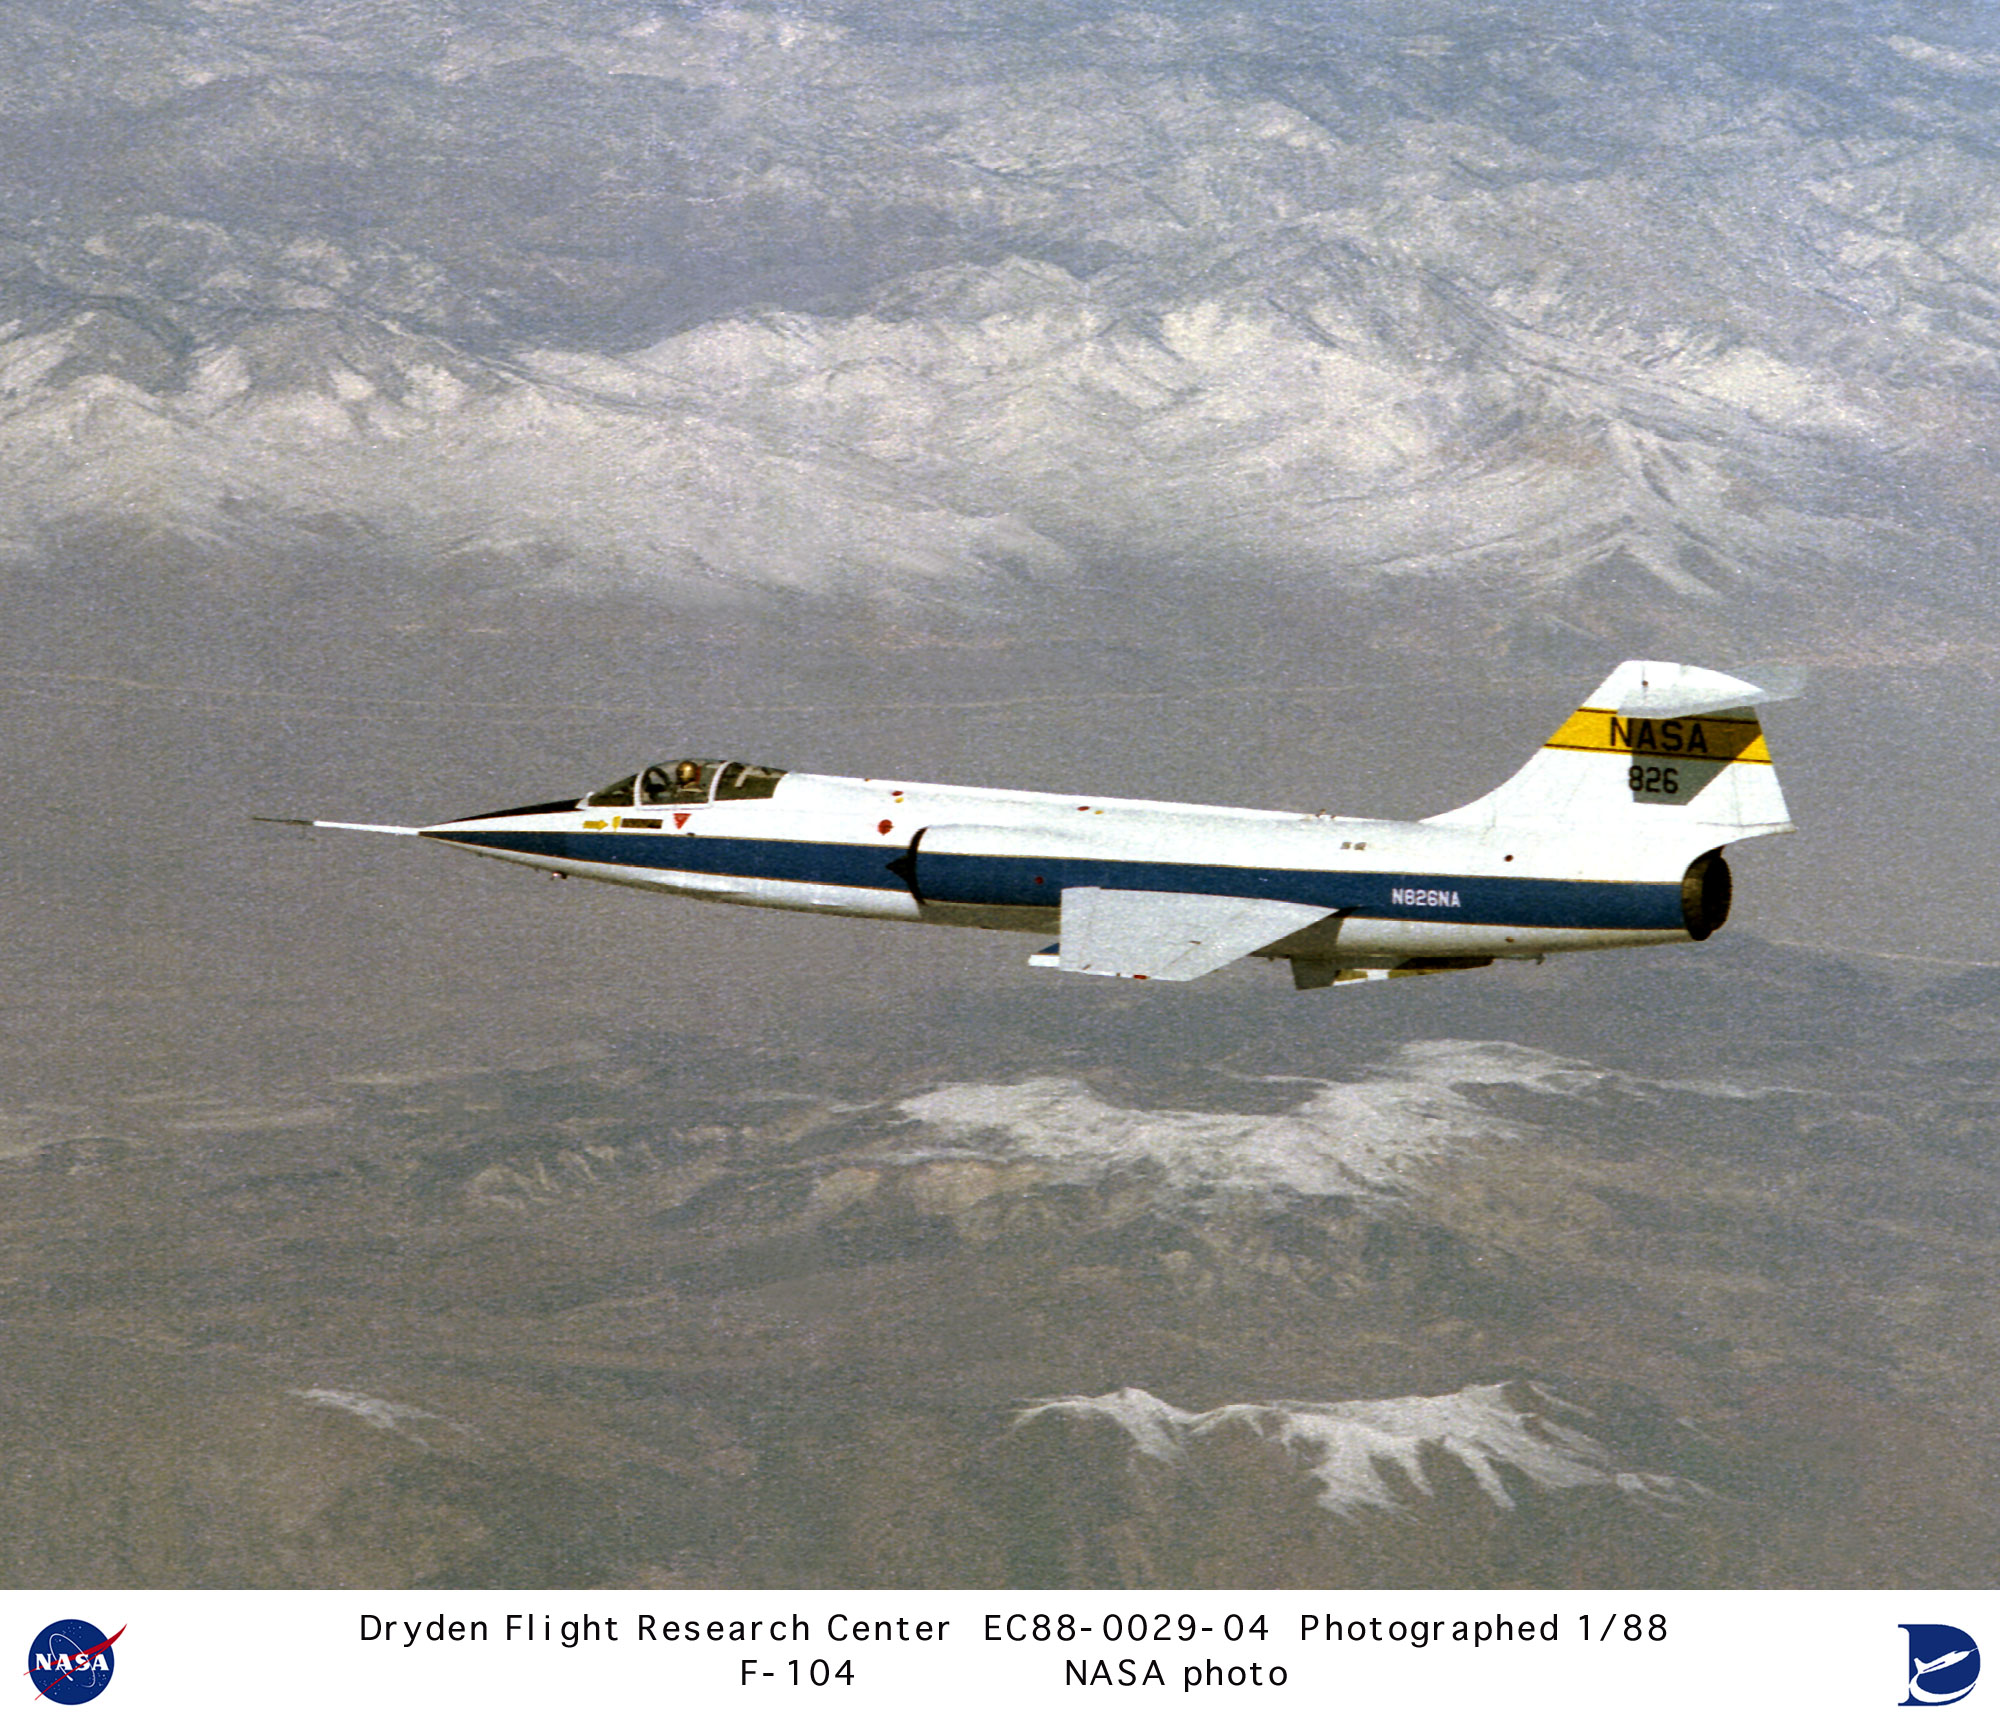 f 104 nasa dryden test fleet - photo #19